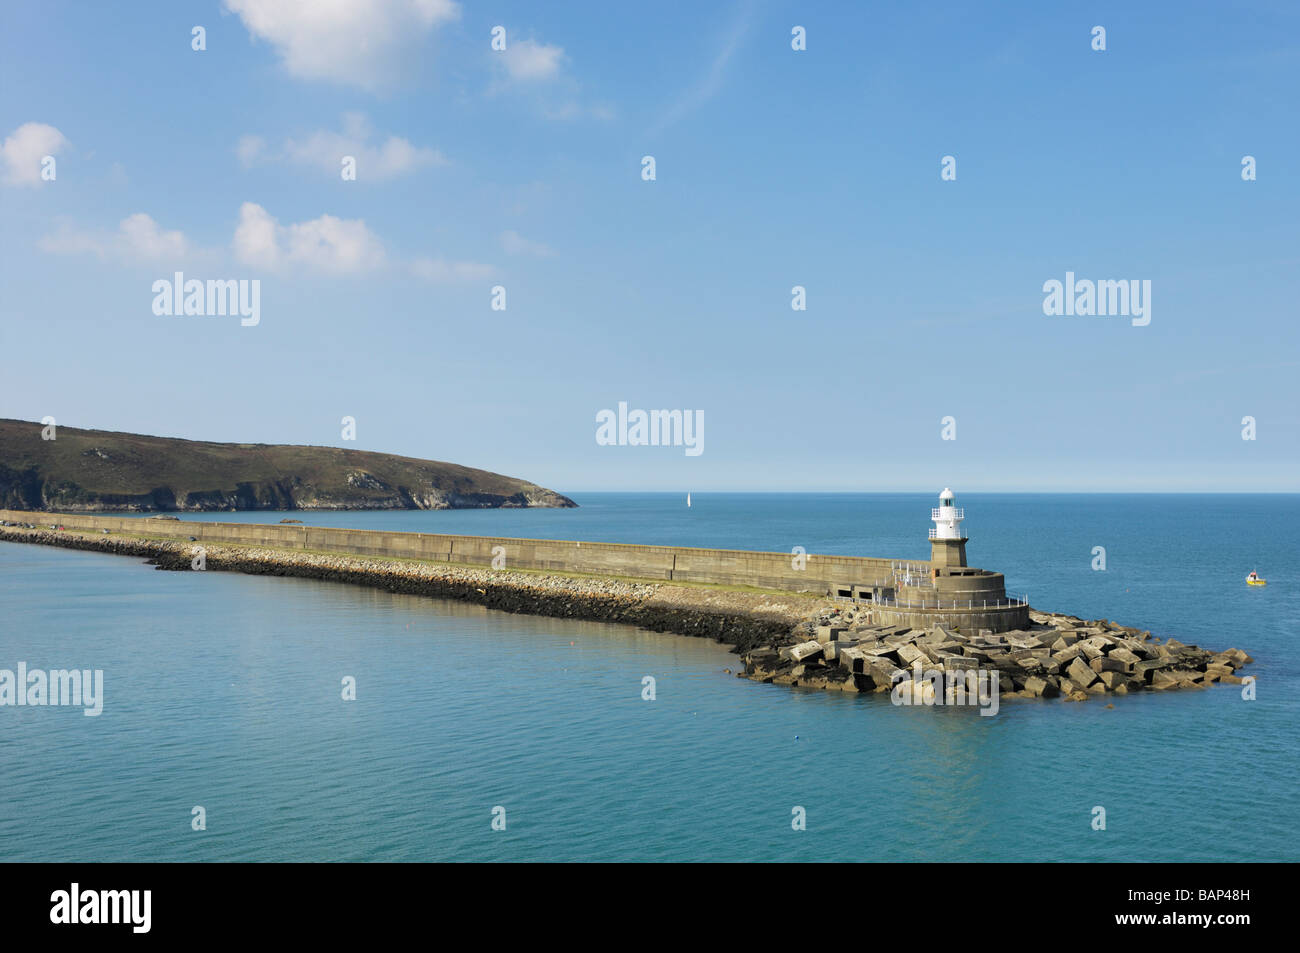 Lighthouse at Fishguard ferry port - Stock Image